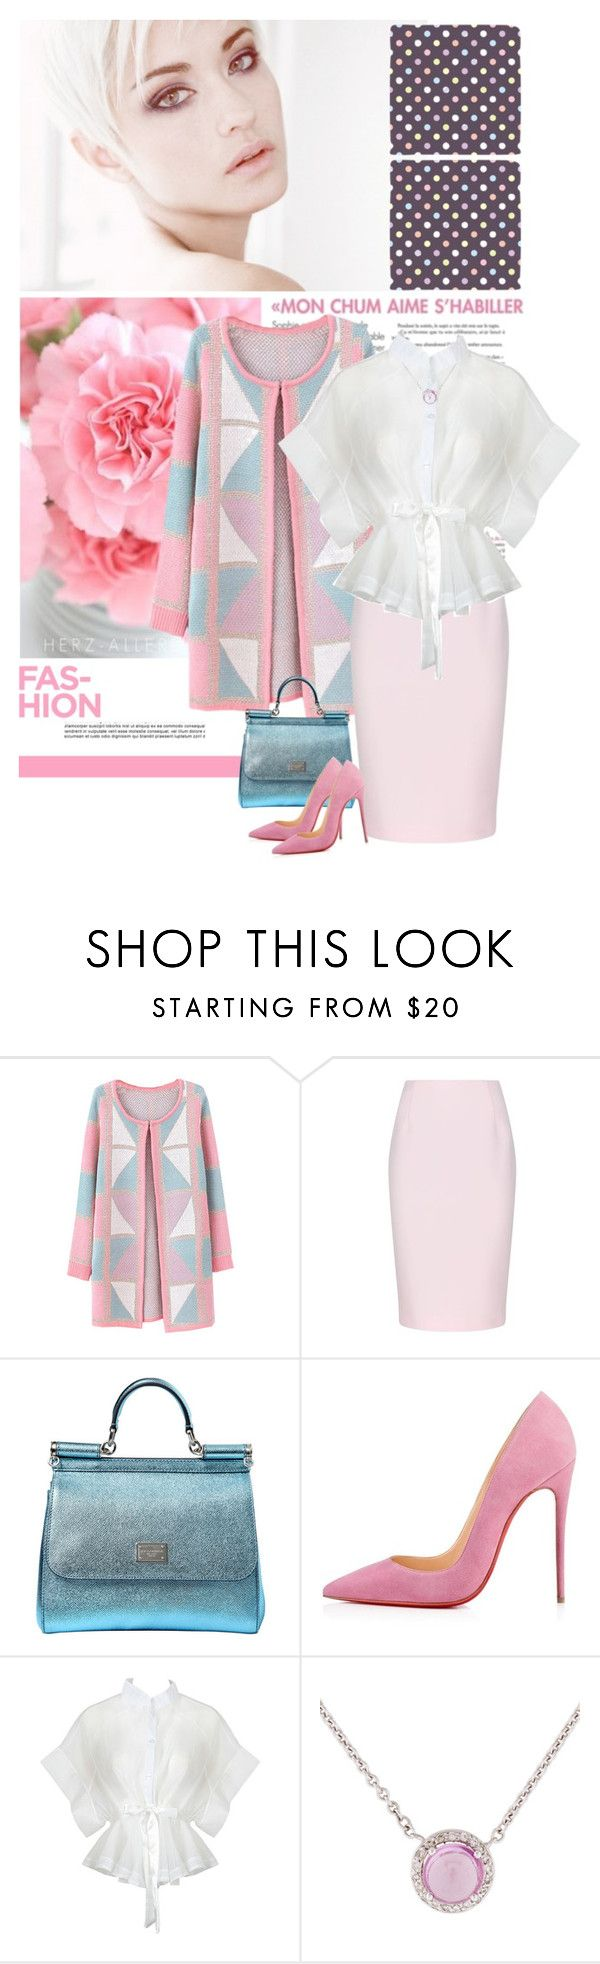 """""""Fashion Pink"""" by mcheffer ❤ liked on Polyvore featuring Chicnova Fashion, Finders Keepers, Dolce&Gabbana, women's clothing, women's fashion, women, female, woman, misses and juniors"""